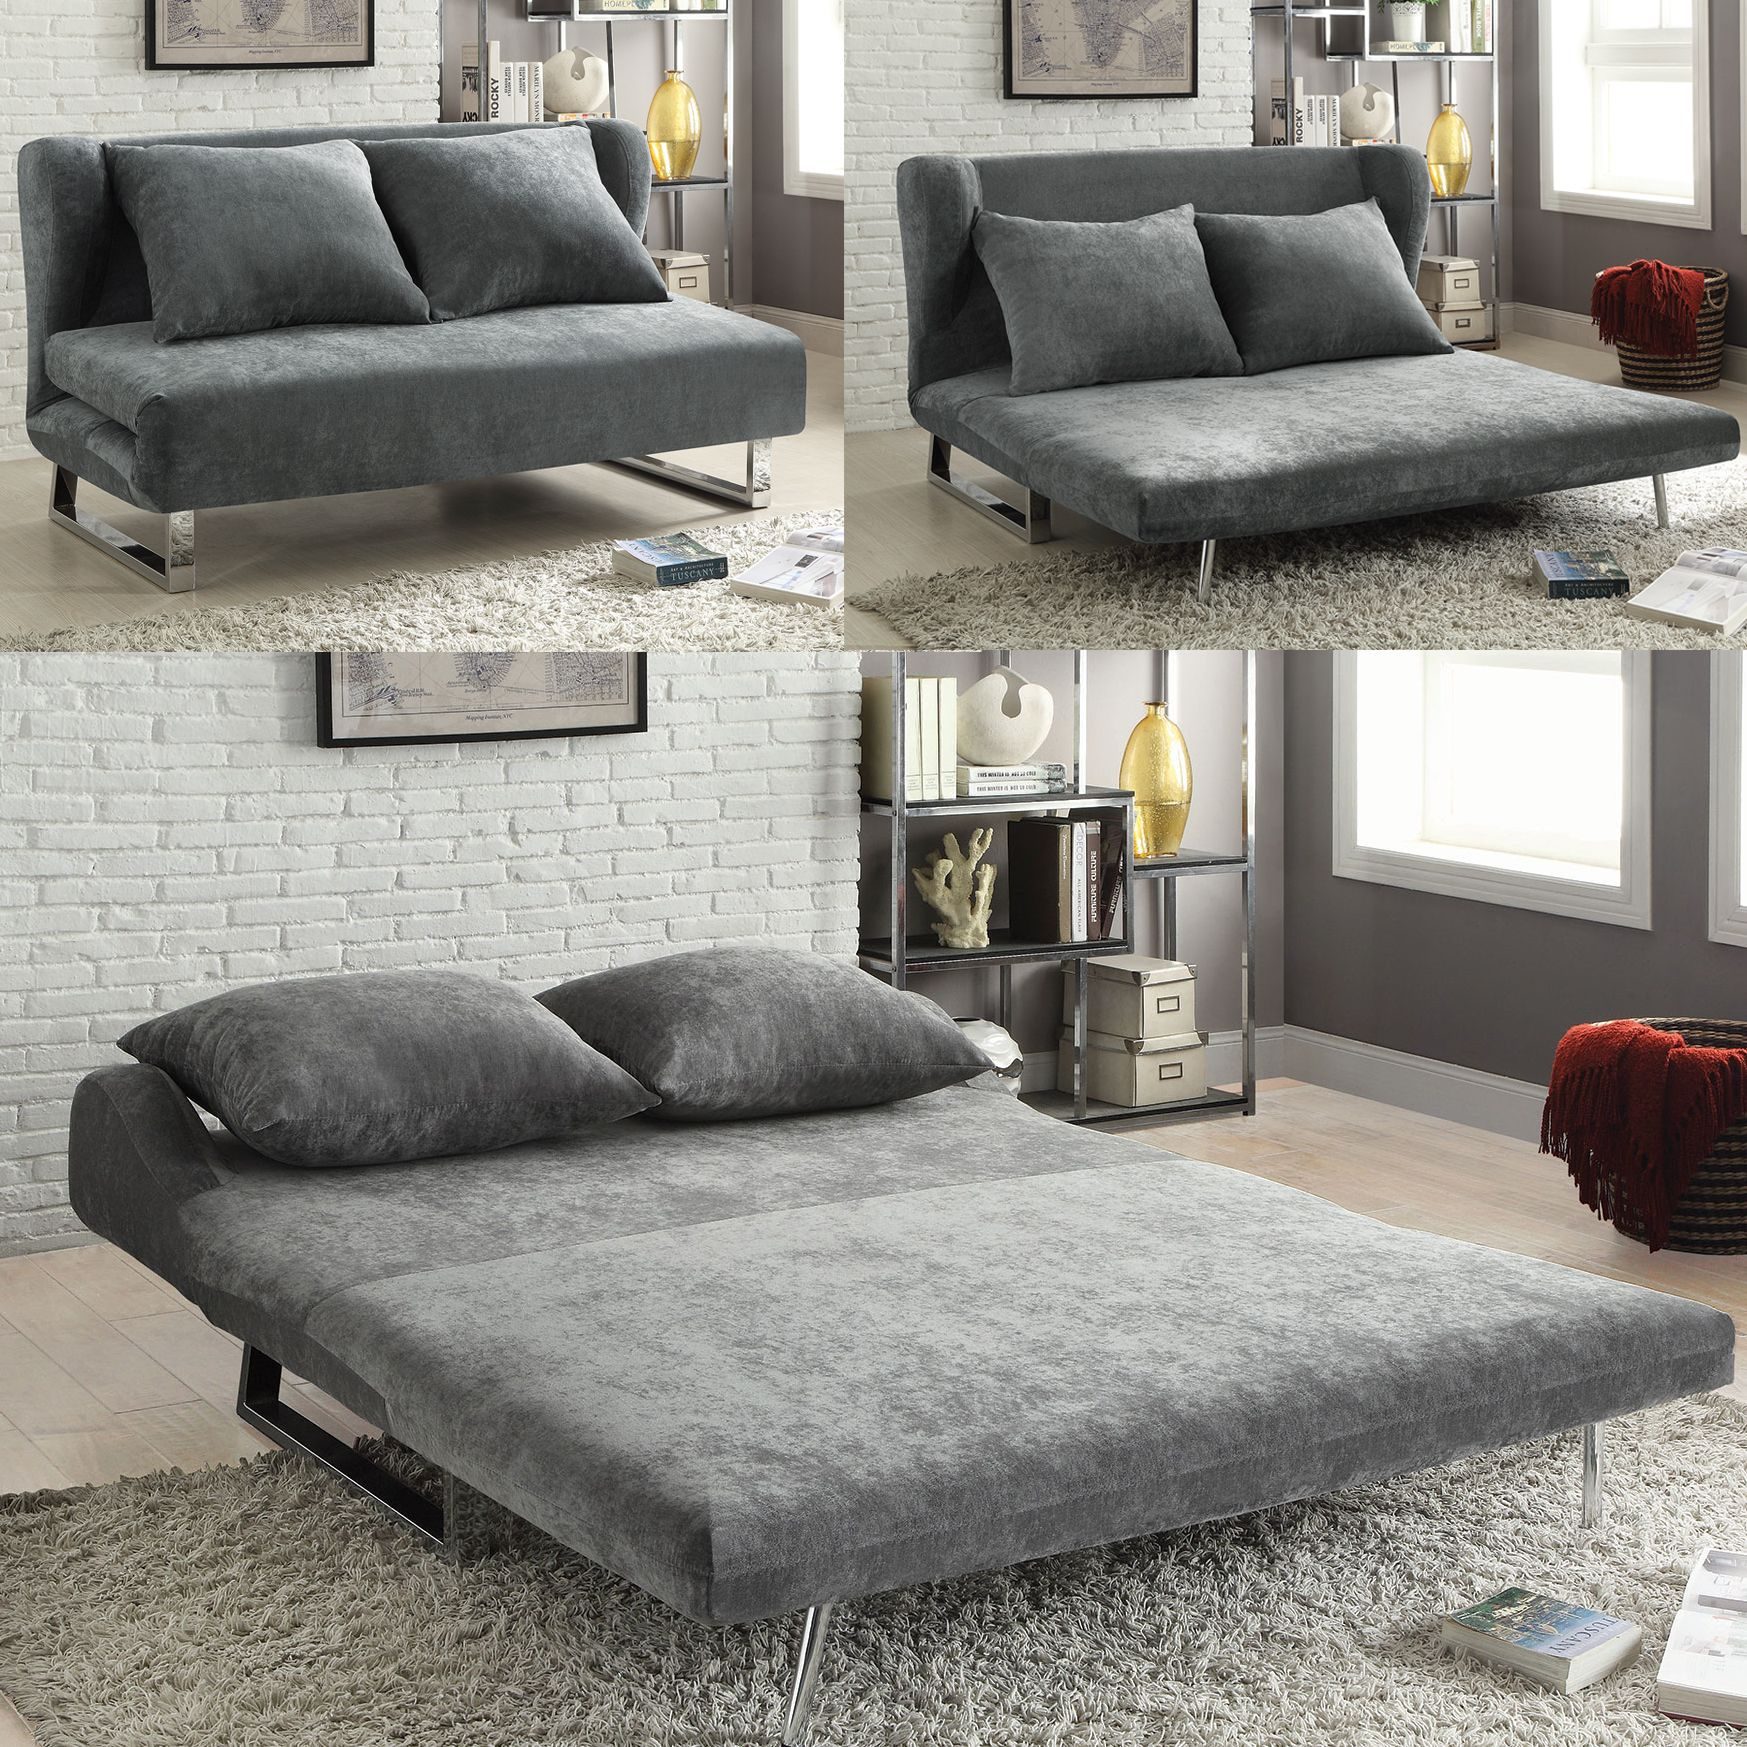 100-in-10 Converts from sofa to chaise to queen size bed. How